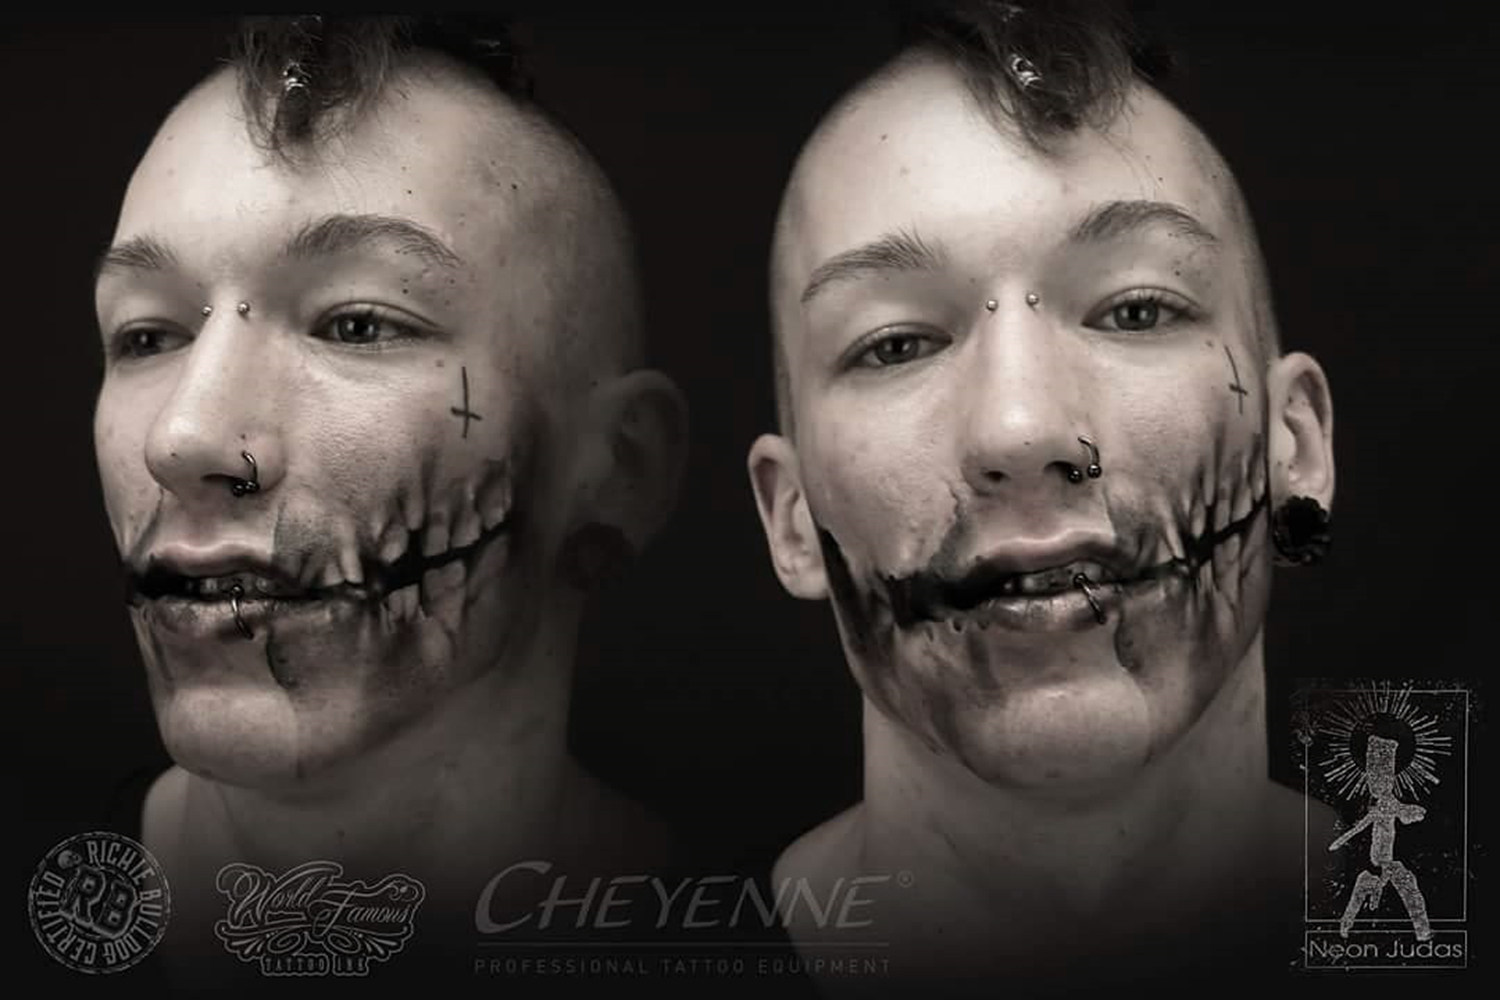 shocky face tattoo, controversial tattoo